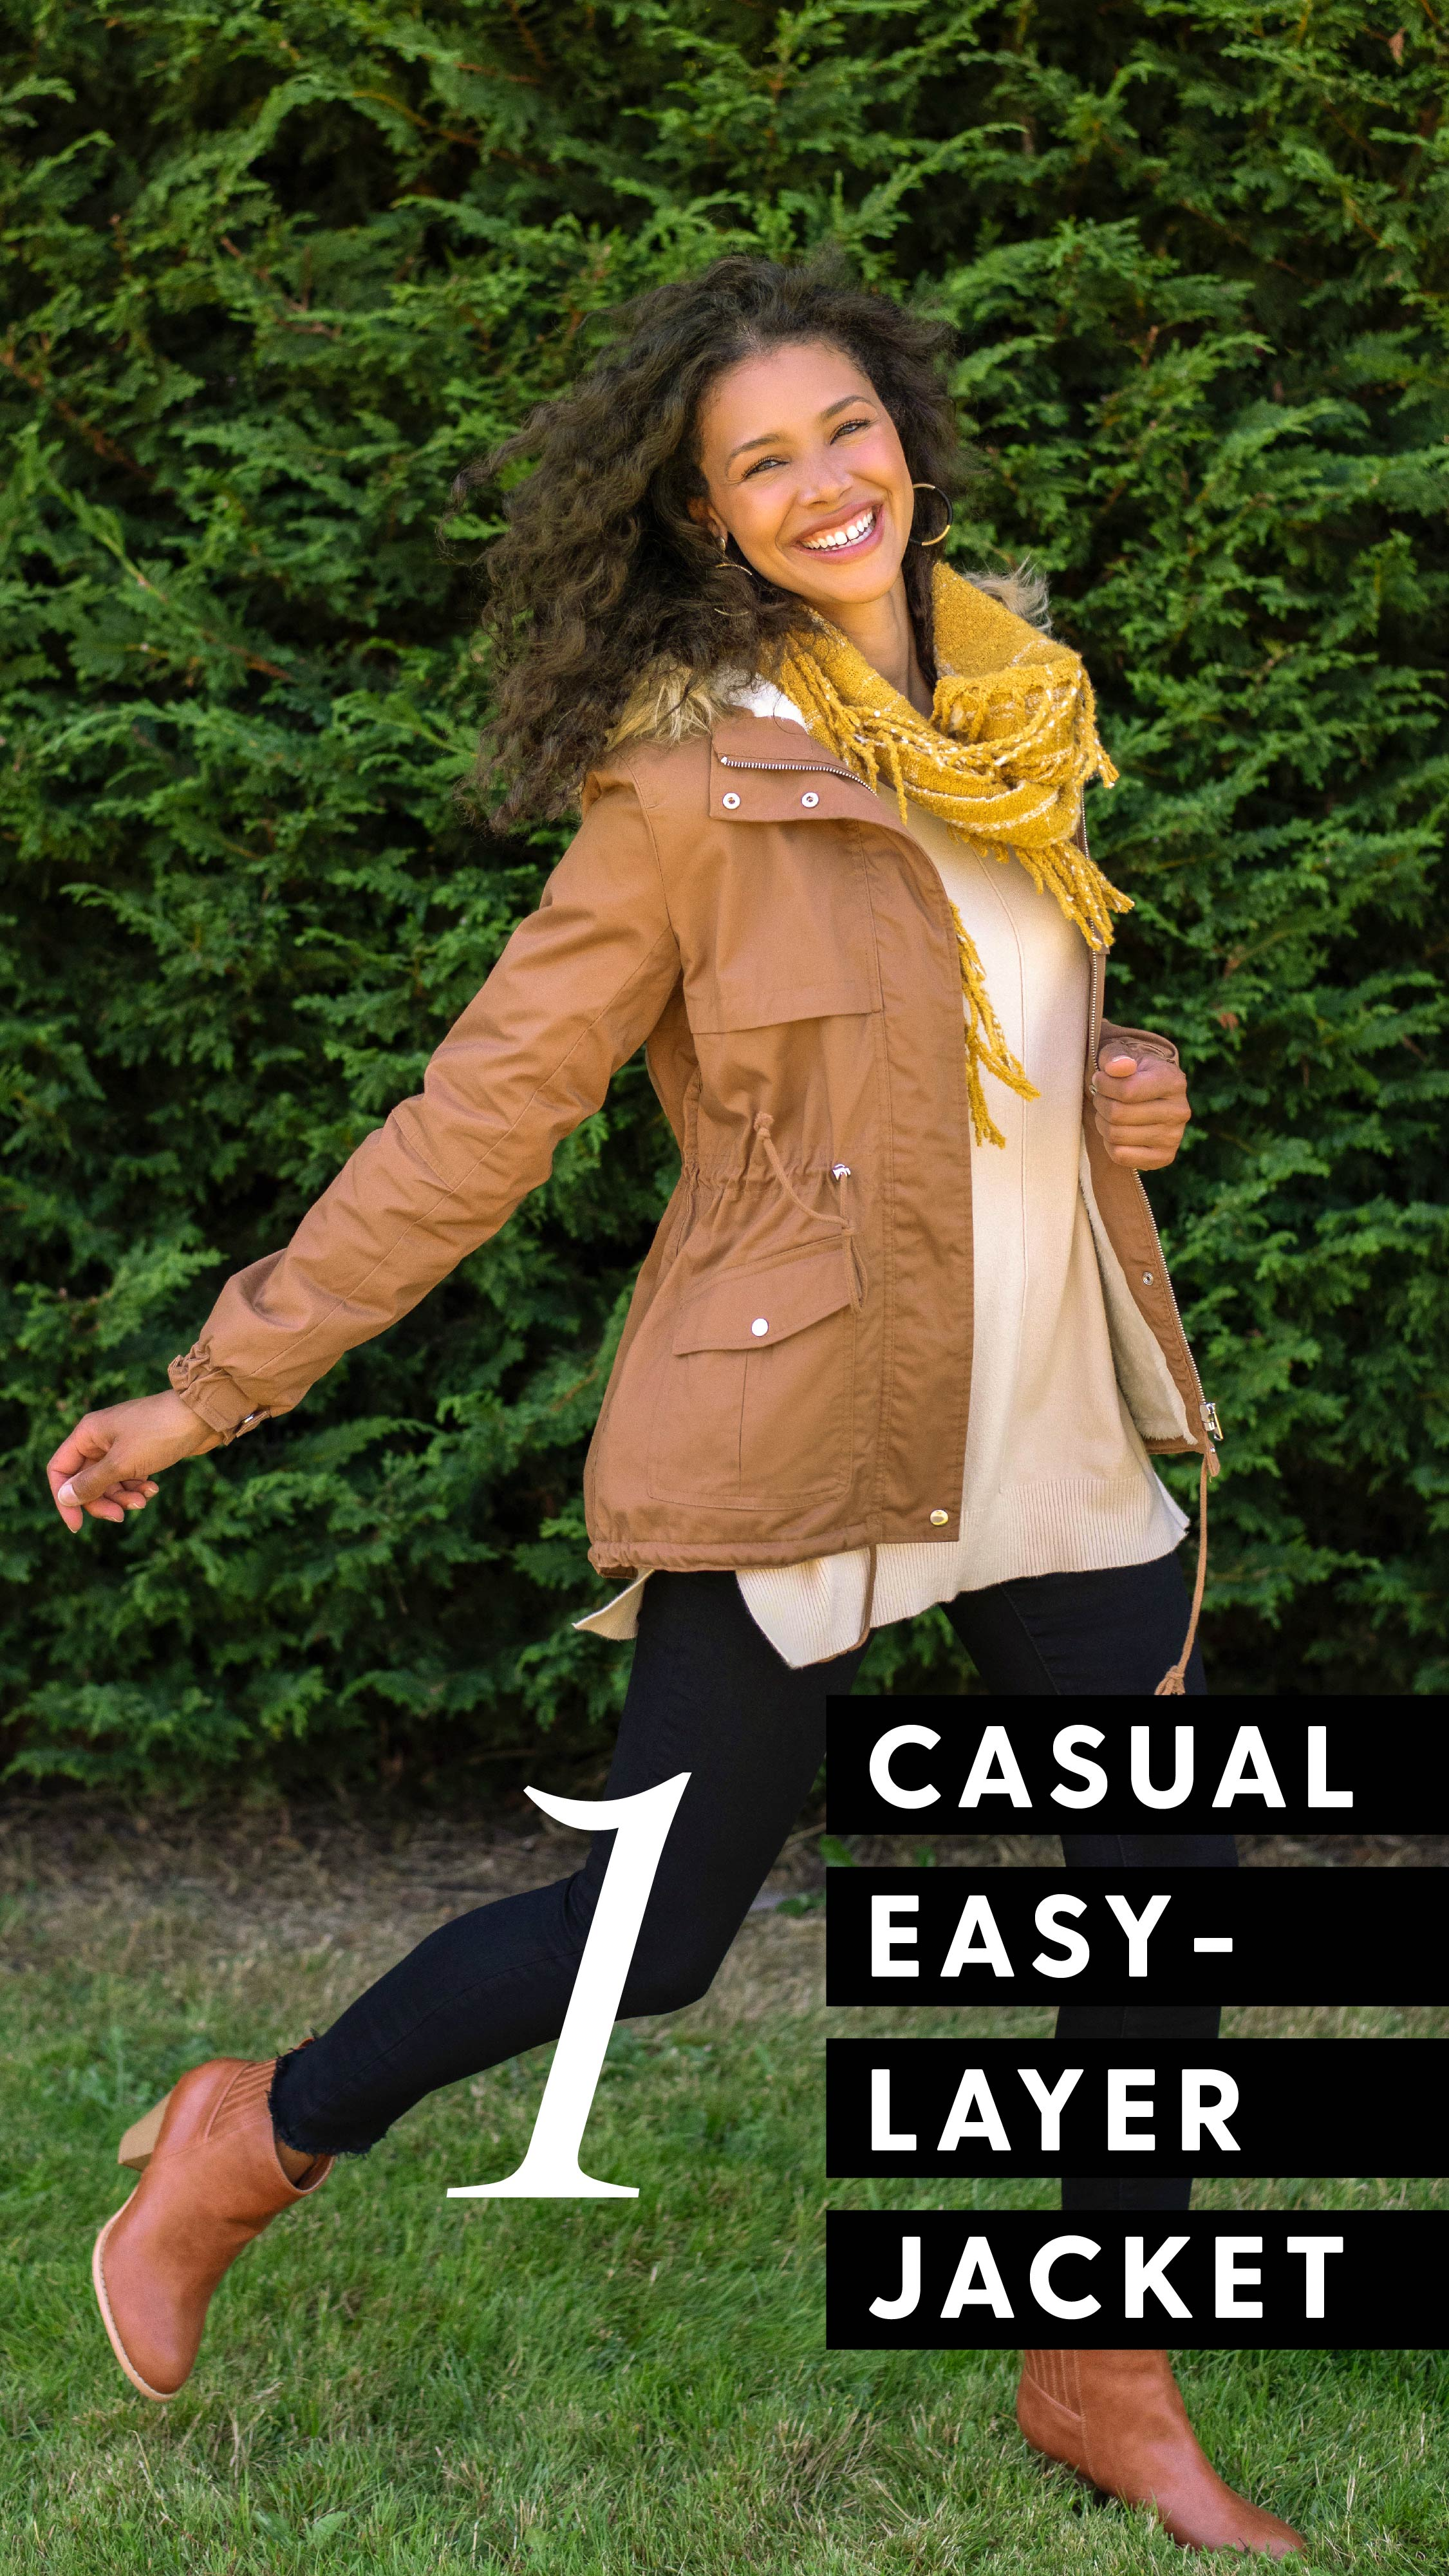 Style 1 Casual easy-layer jacket. Picture of women in light taupe jacket, layered with a yellow scarf and cream sweater